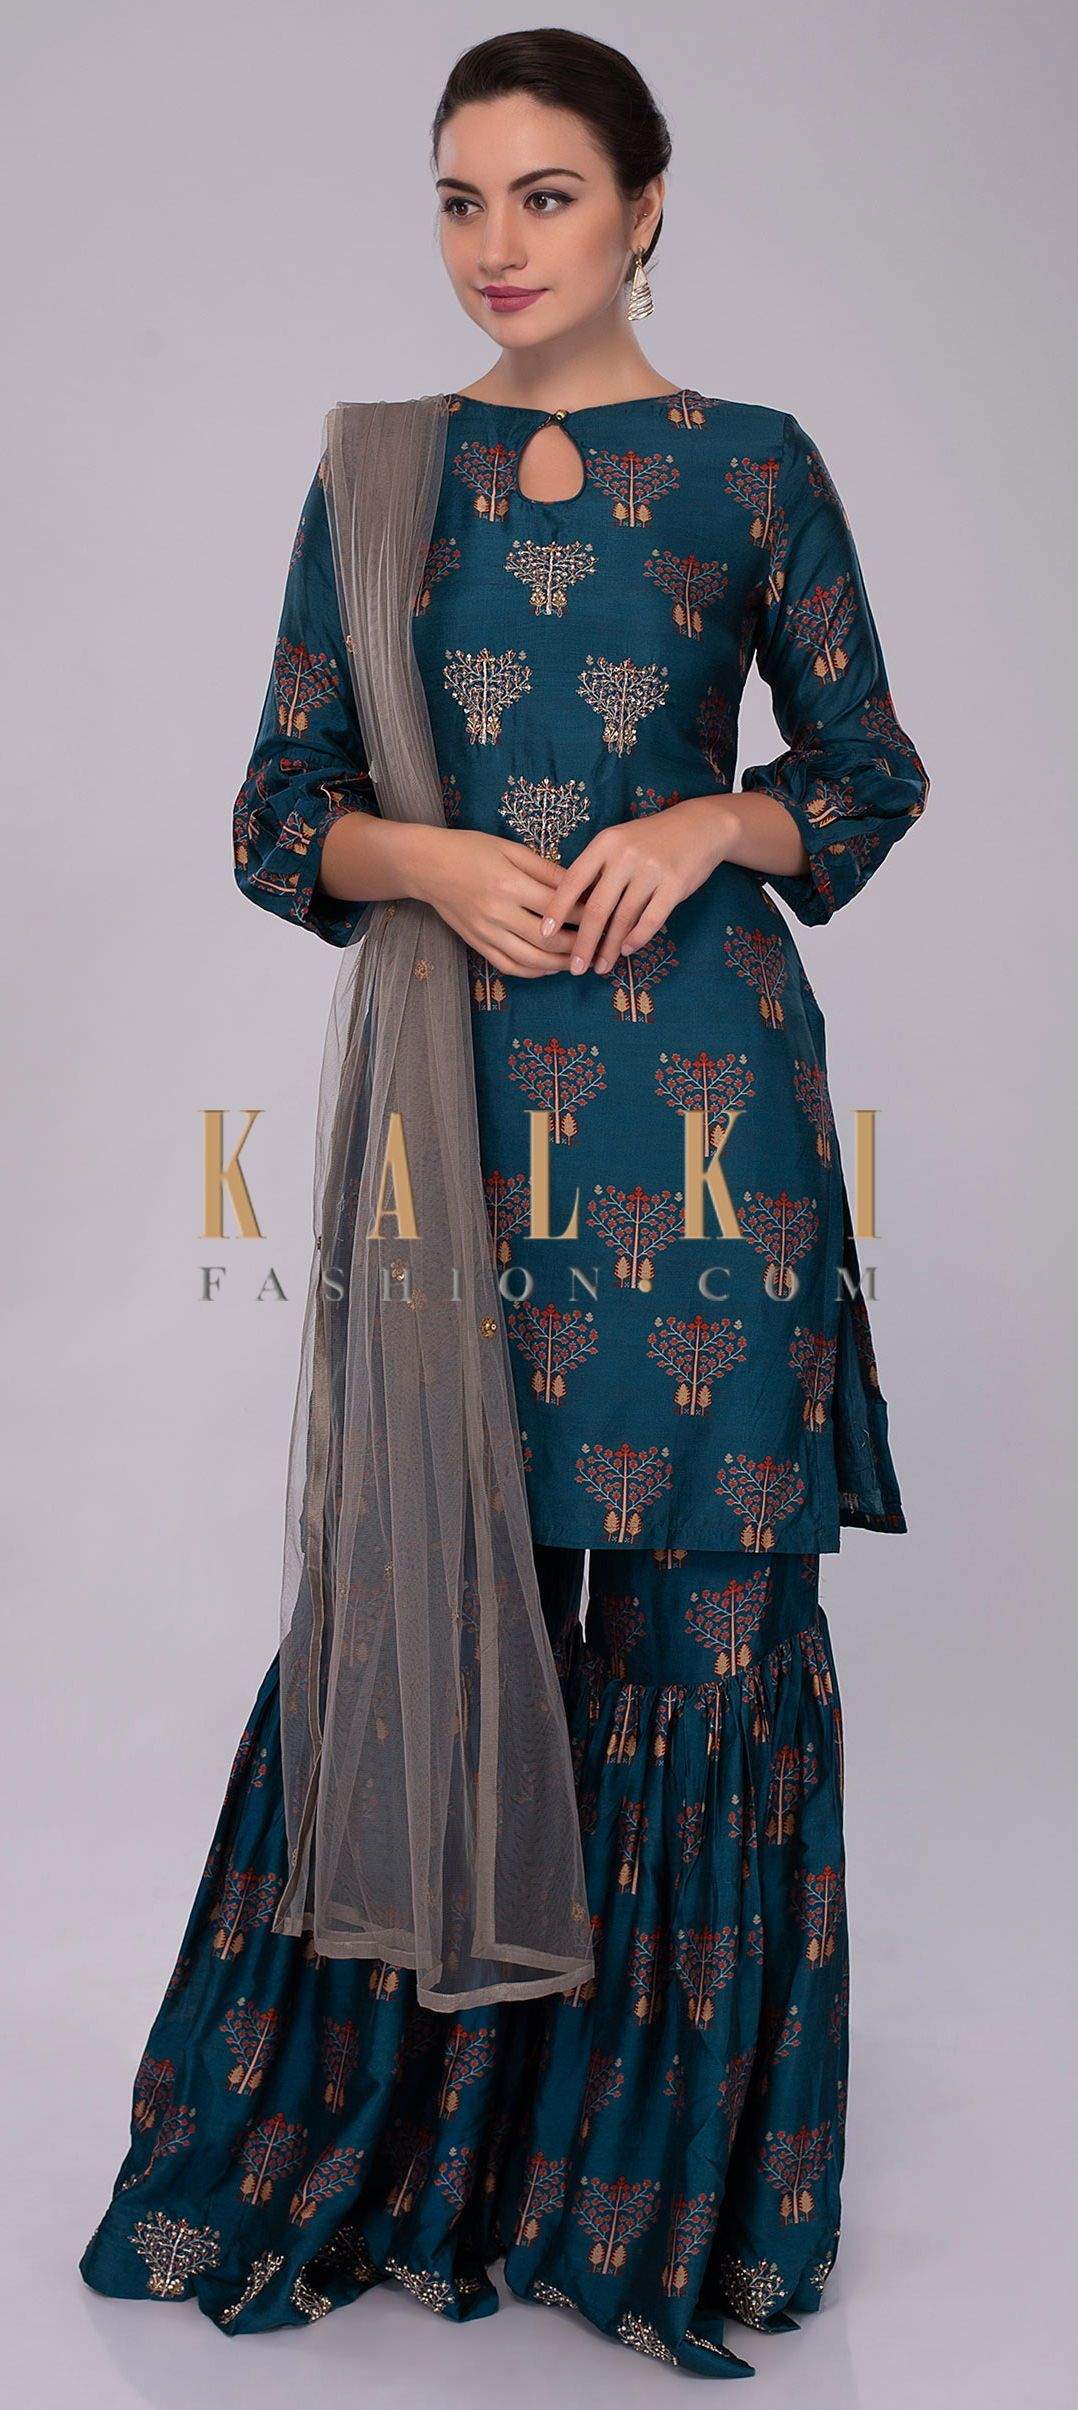 Buy Online from the link below. We ship worldwide (Free Shipping over US$100)  Click Anywhere to Tag Azure-blue-cotton-silk-sharara-suit-in-print-and-embroidered-butti-only-on-Kalki #shararadesigns Buy Online from the link below. We ship worldwide (Free Shipping over US$100)  Click Anywhere to Tag Azure-blue-cotton-silk-sharara-suit-in-print-and-embroidered-butti-only-on-Kalki #shararadesigns